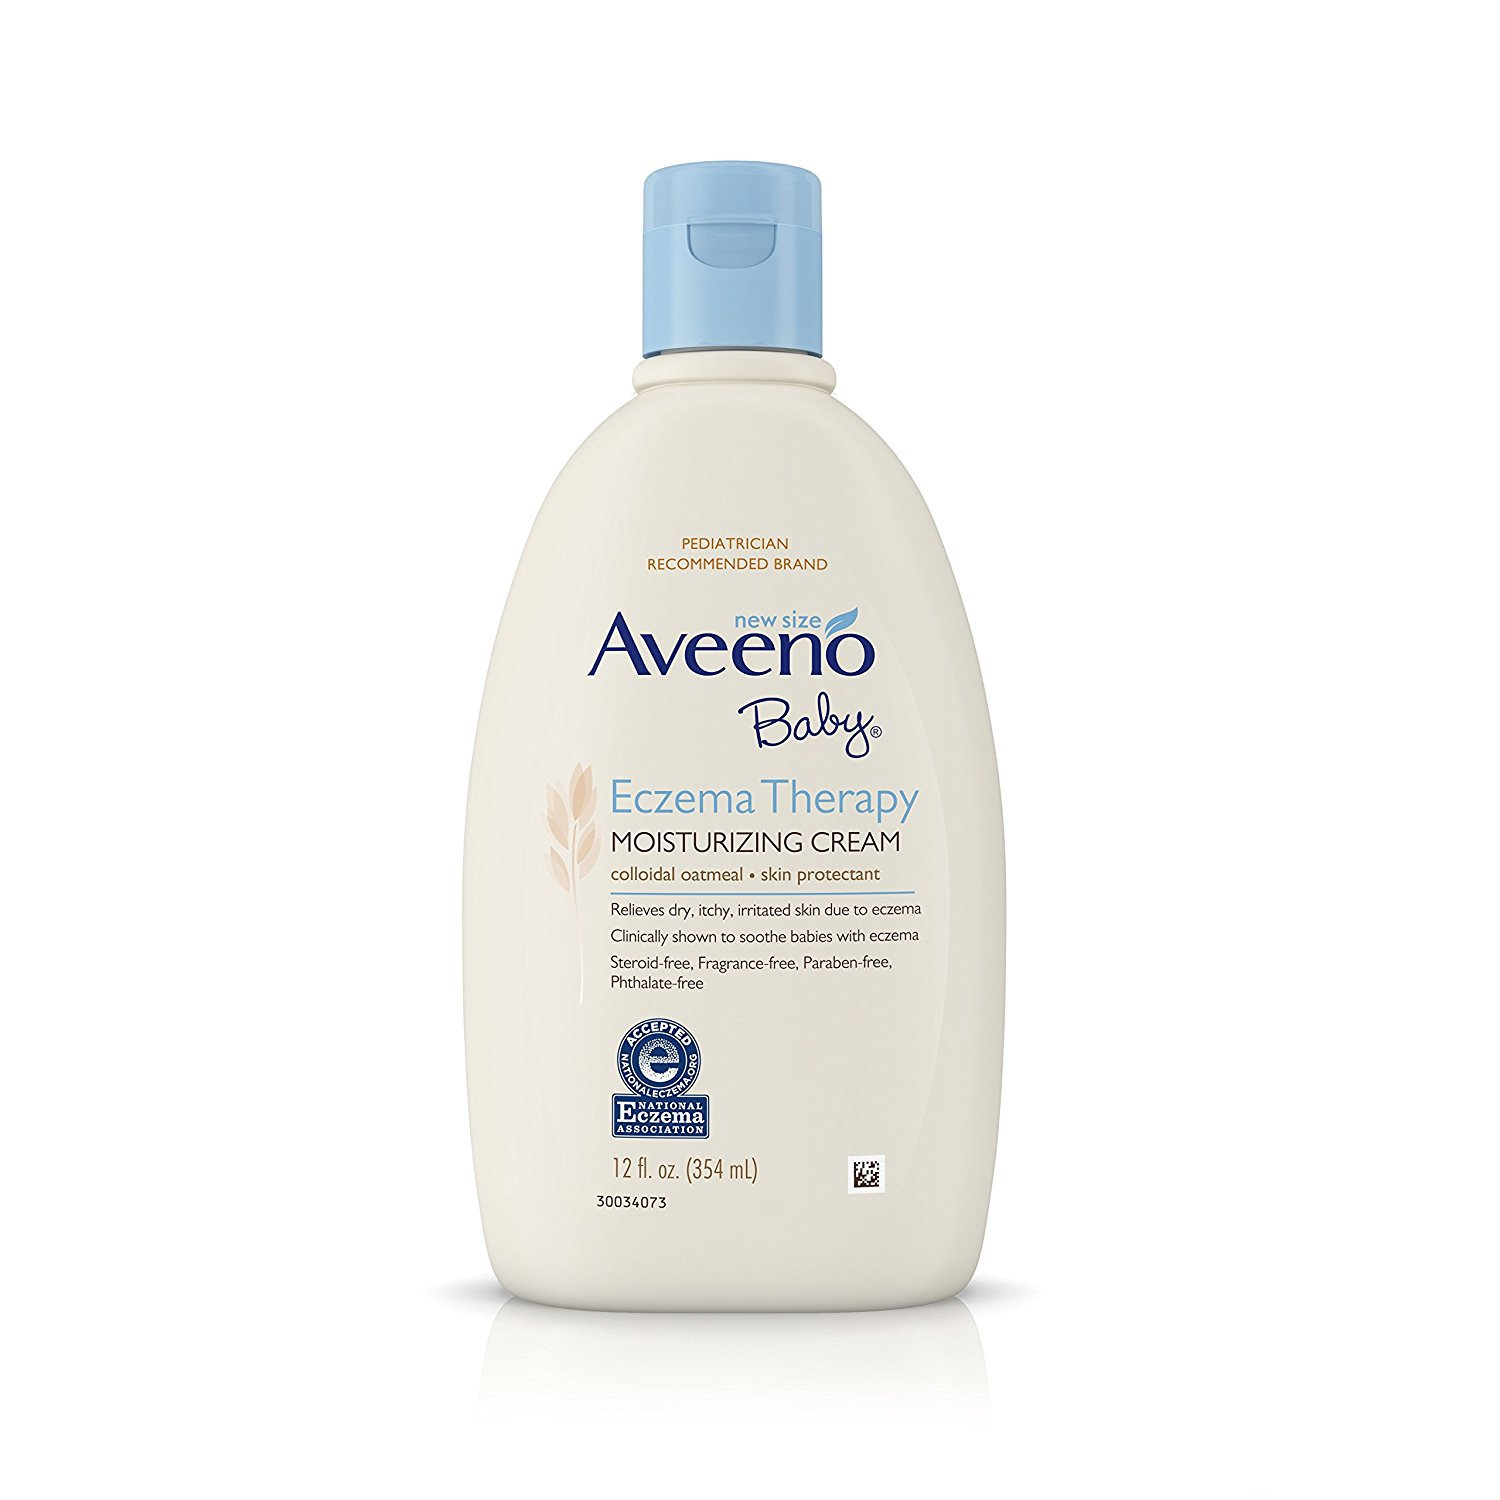 Aveeno Baby Eczema Cream 12 oz  (354ml)